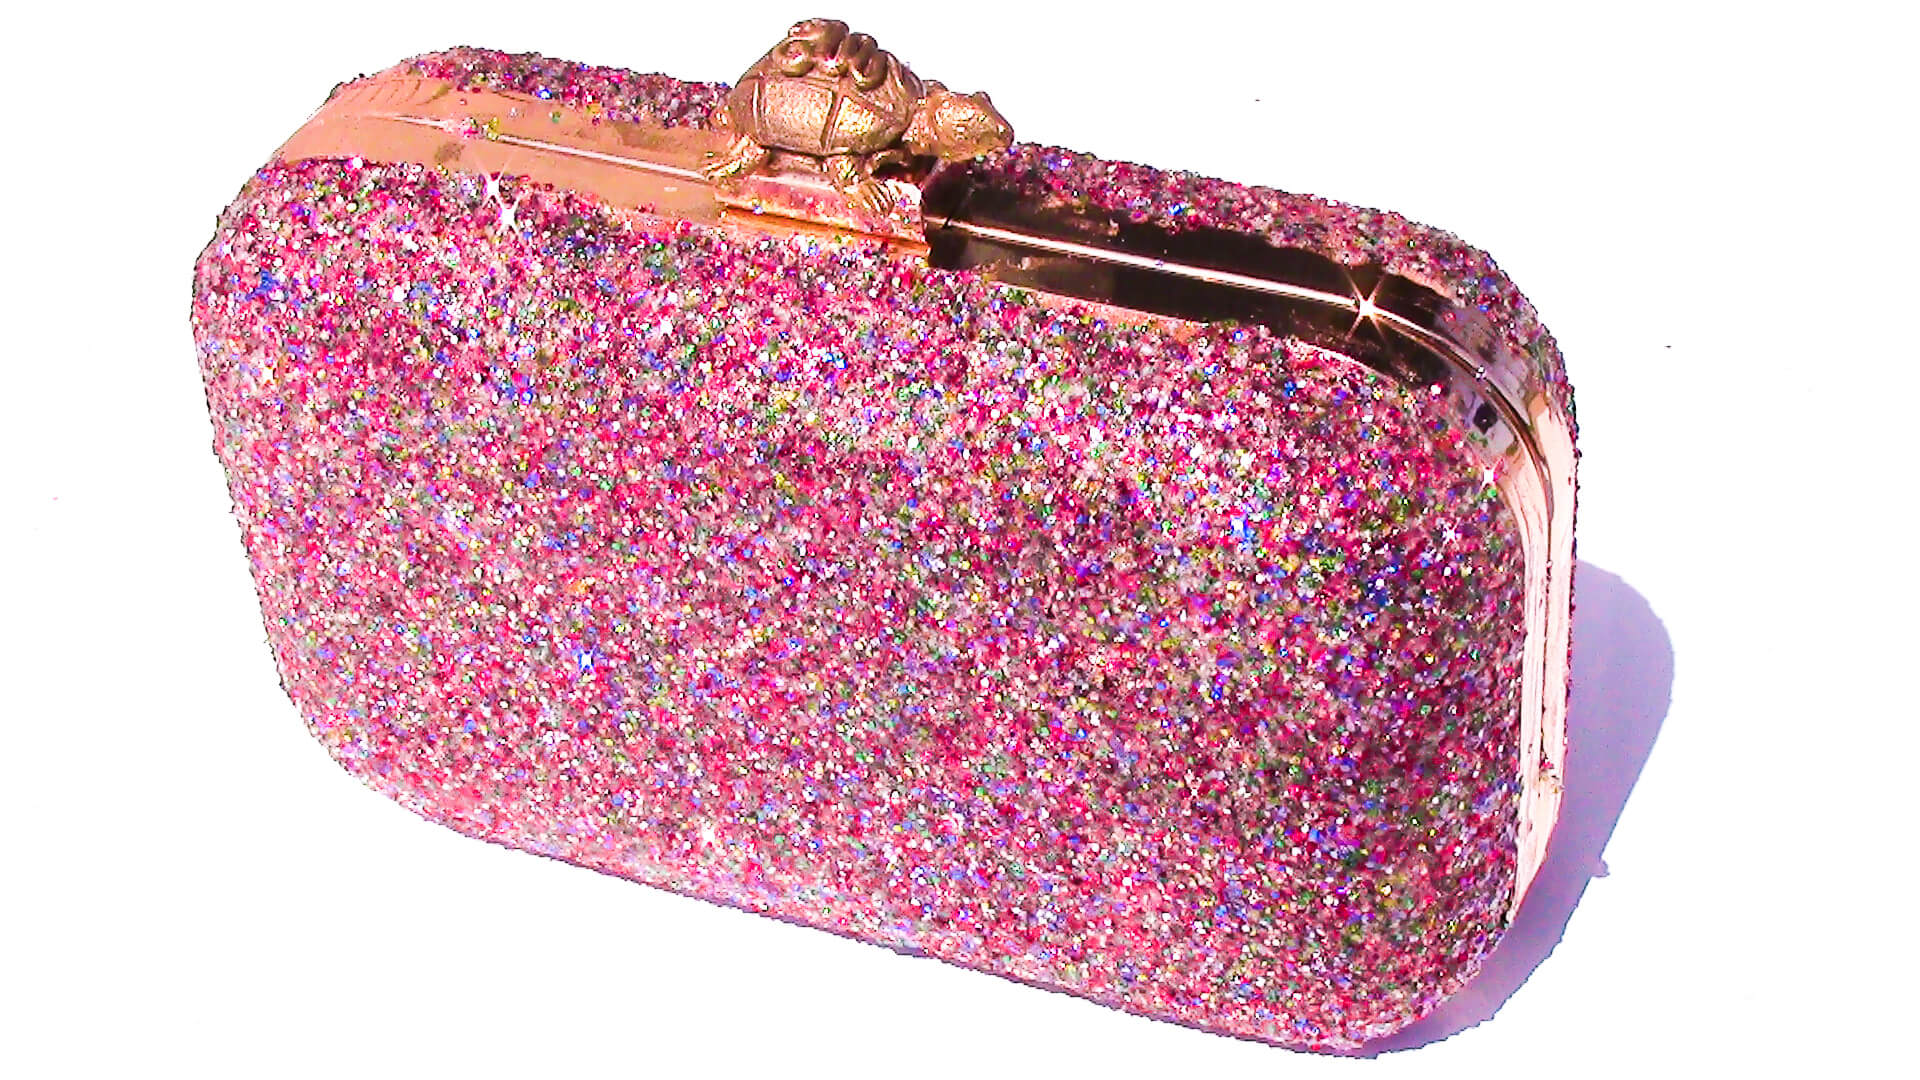 Kate Spade Inspired DIY Glitter Purse